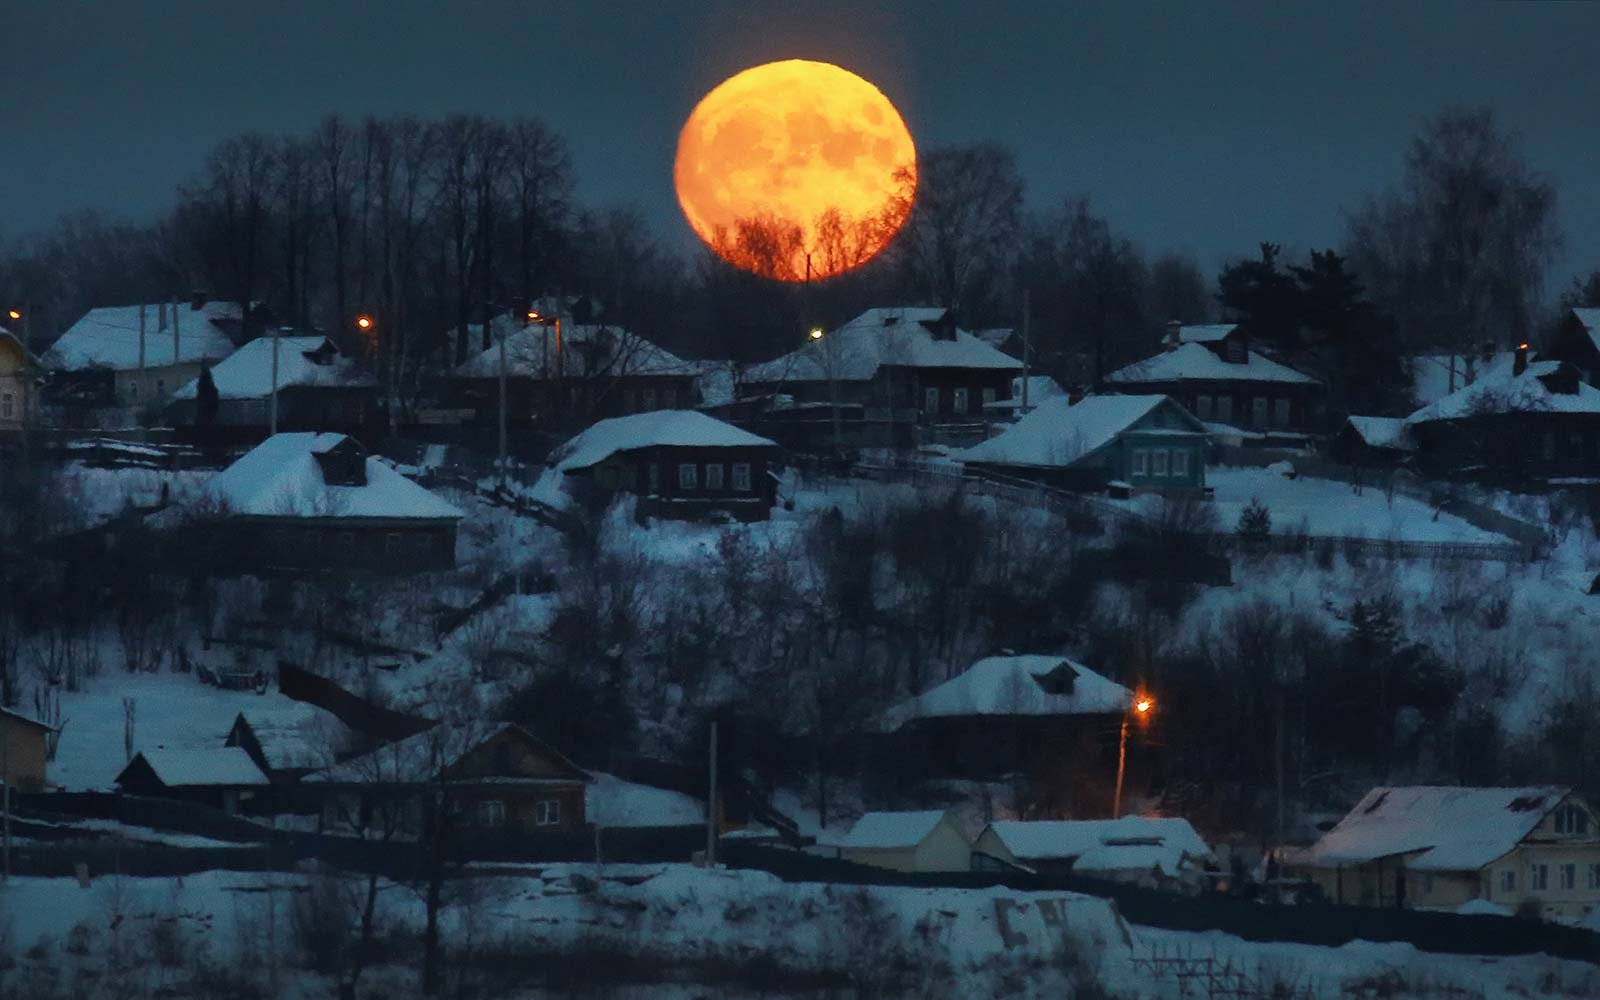 An Epic Super Blue Blood Moon Is Coming to Ring in 2018